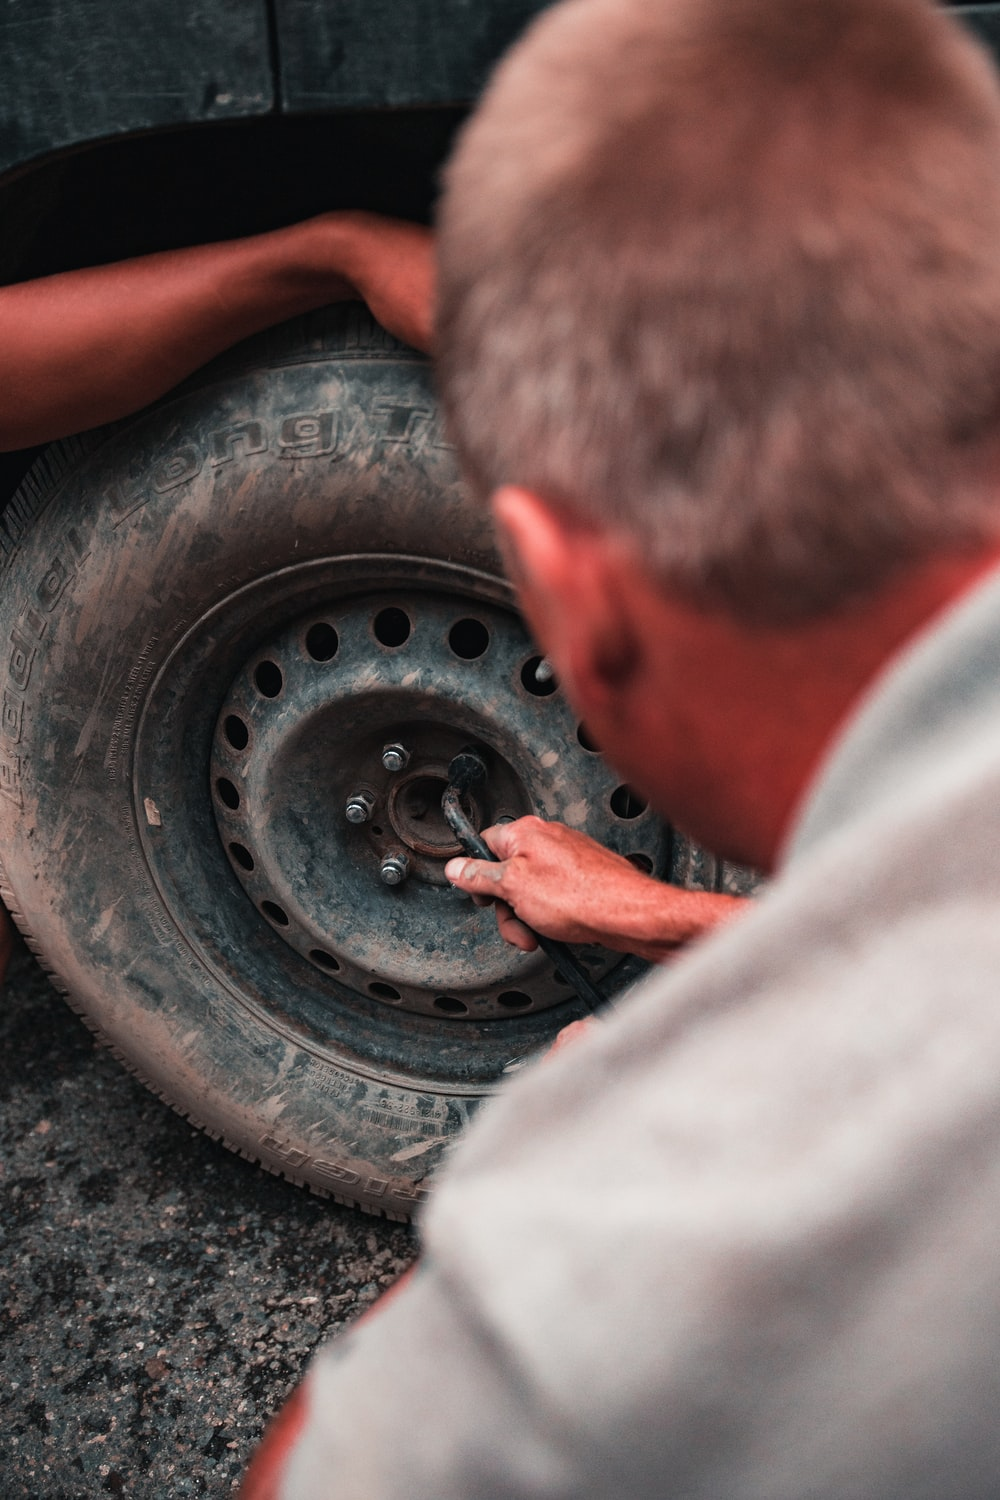 man fixing tire of vehicle